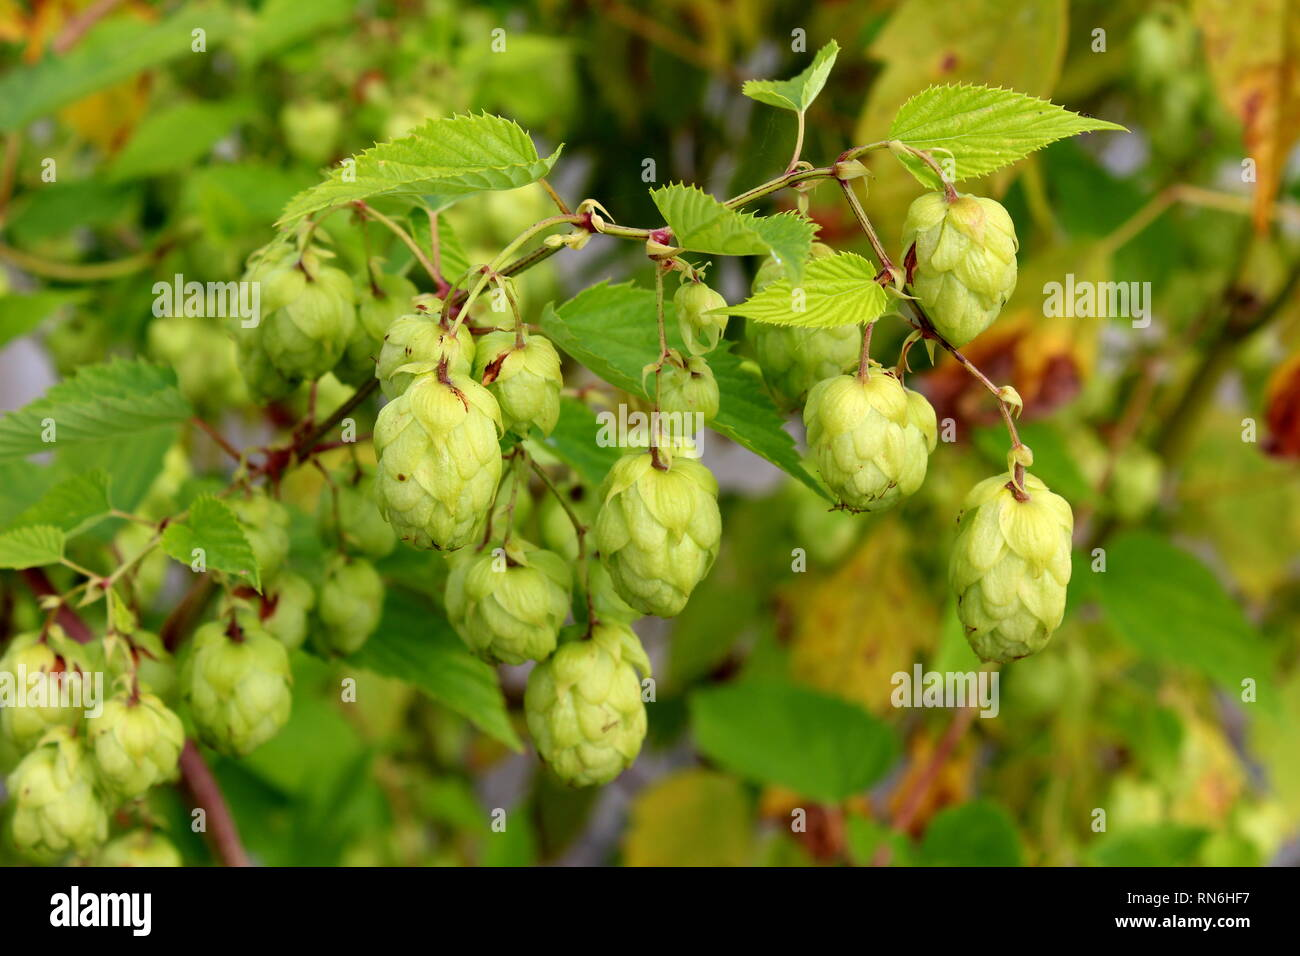 Common hop or Humulus lupulus or Hops dioecious perennial herbaceous climbing flowering bine plant with multiple light hops on single branch - Stock Image